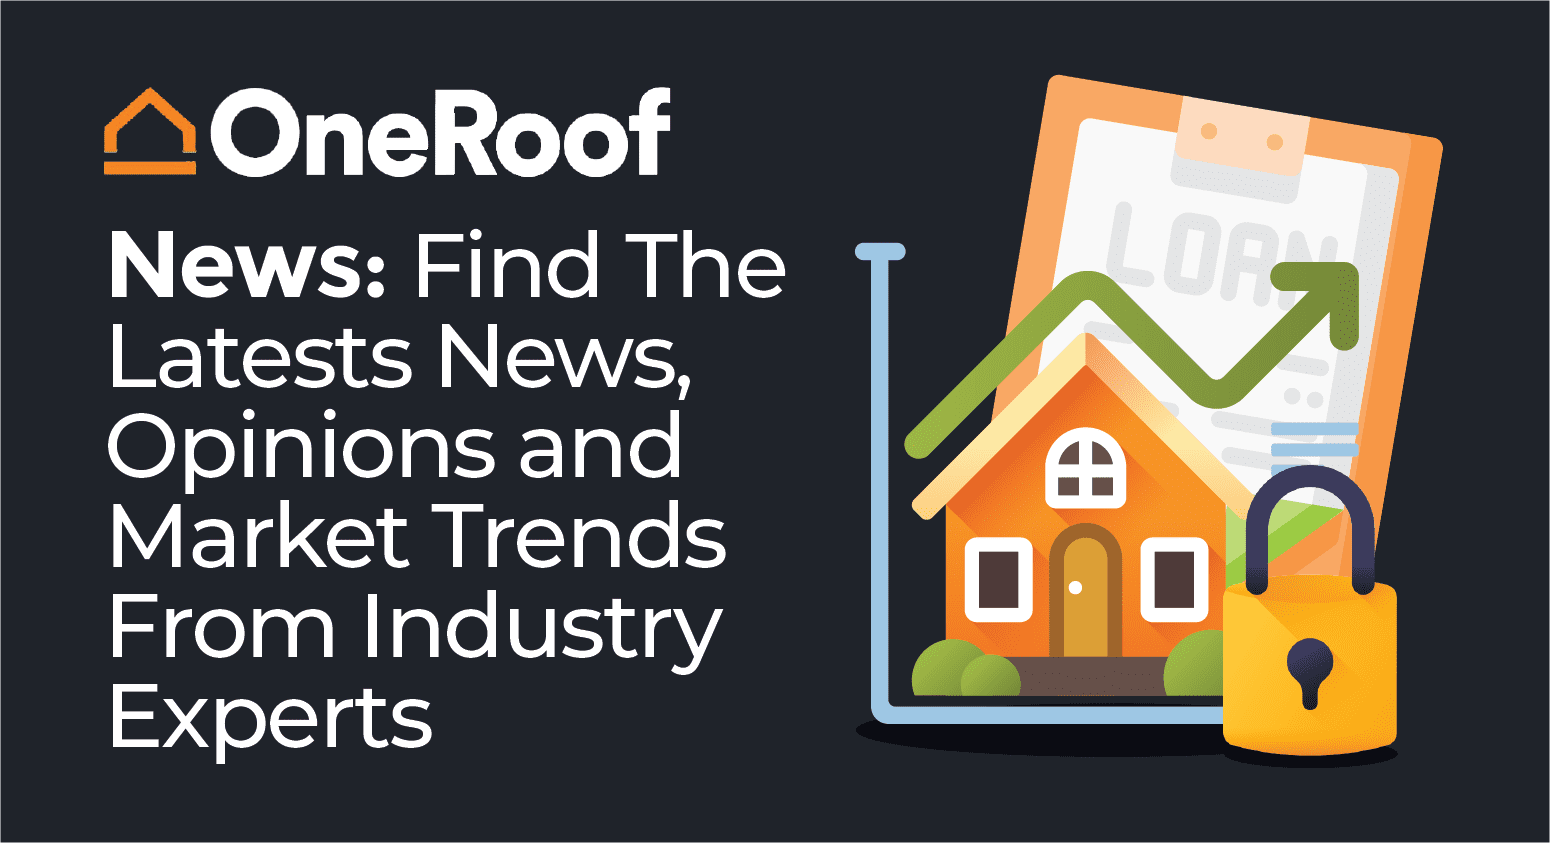 OneRoof News: Find the Latest News, Opinions and Market Trends From Industry Experts